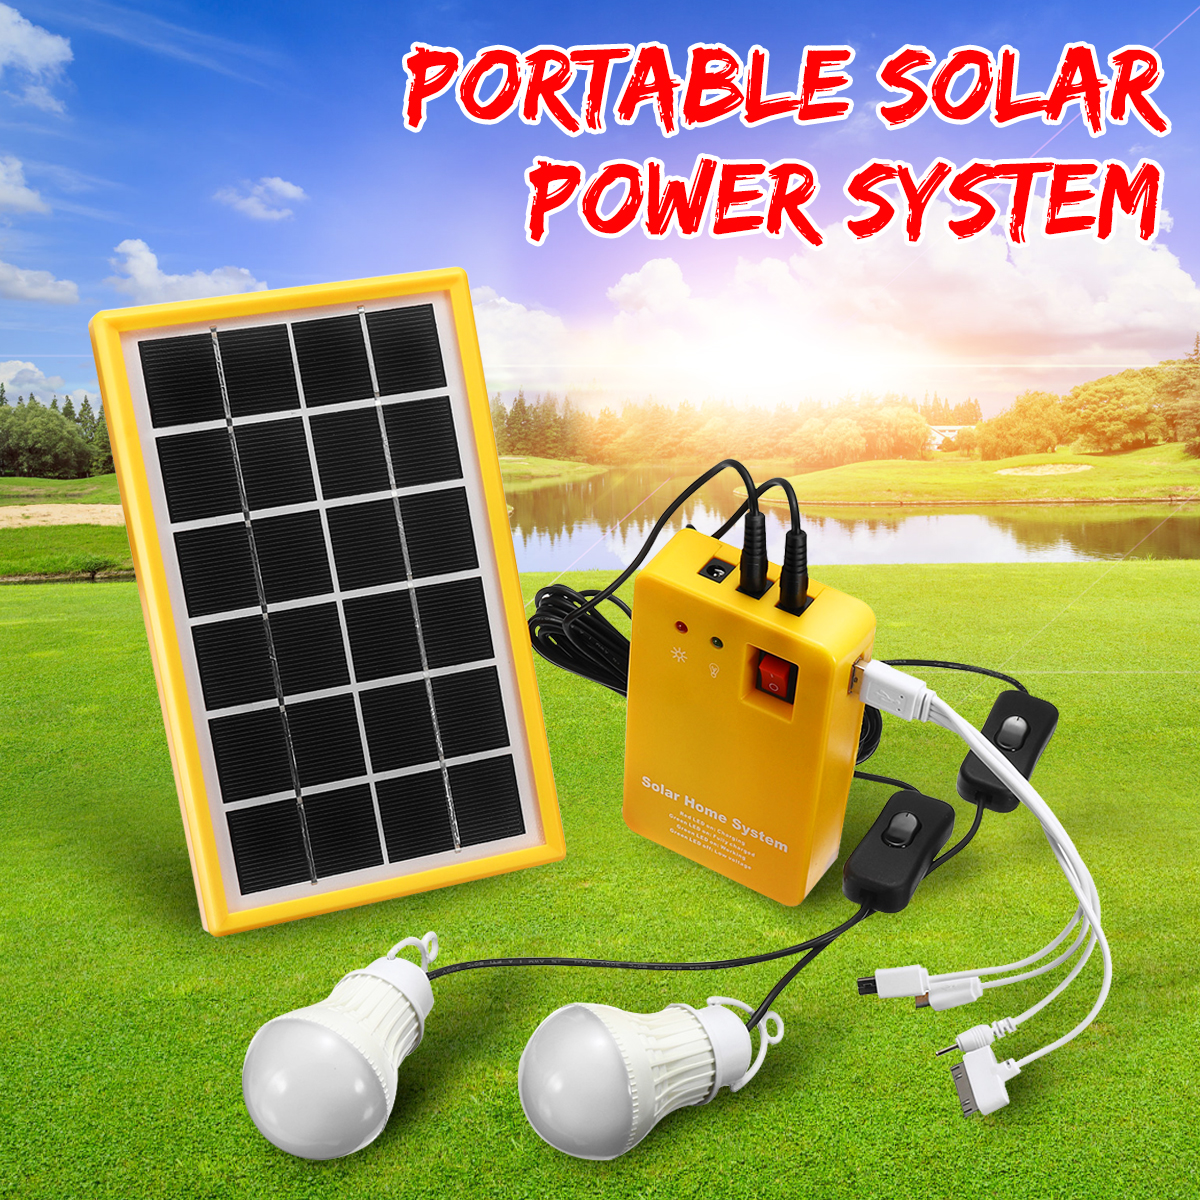 Solar Power Panel 5V USB Charger Home System with 3 LED Bulbs Light Generator Kit Indoor/Outdoor Lighting Over Discharge Protect solar panel power storage generator system led light usb charger portable home outdoor led lighting system support fm radio